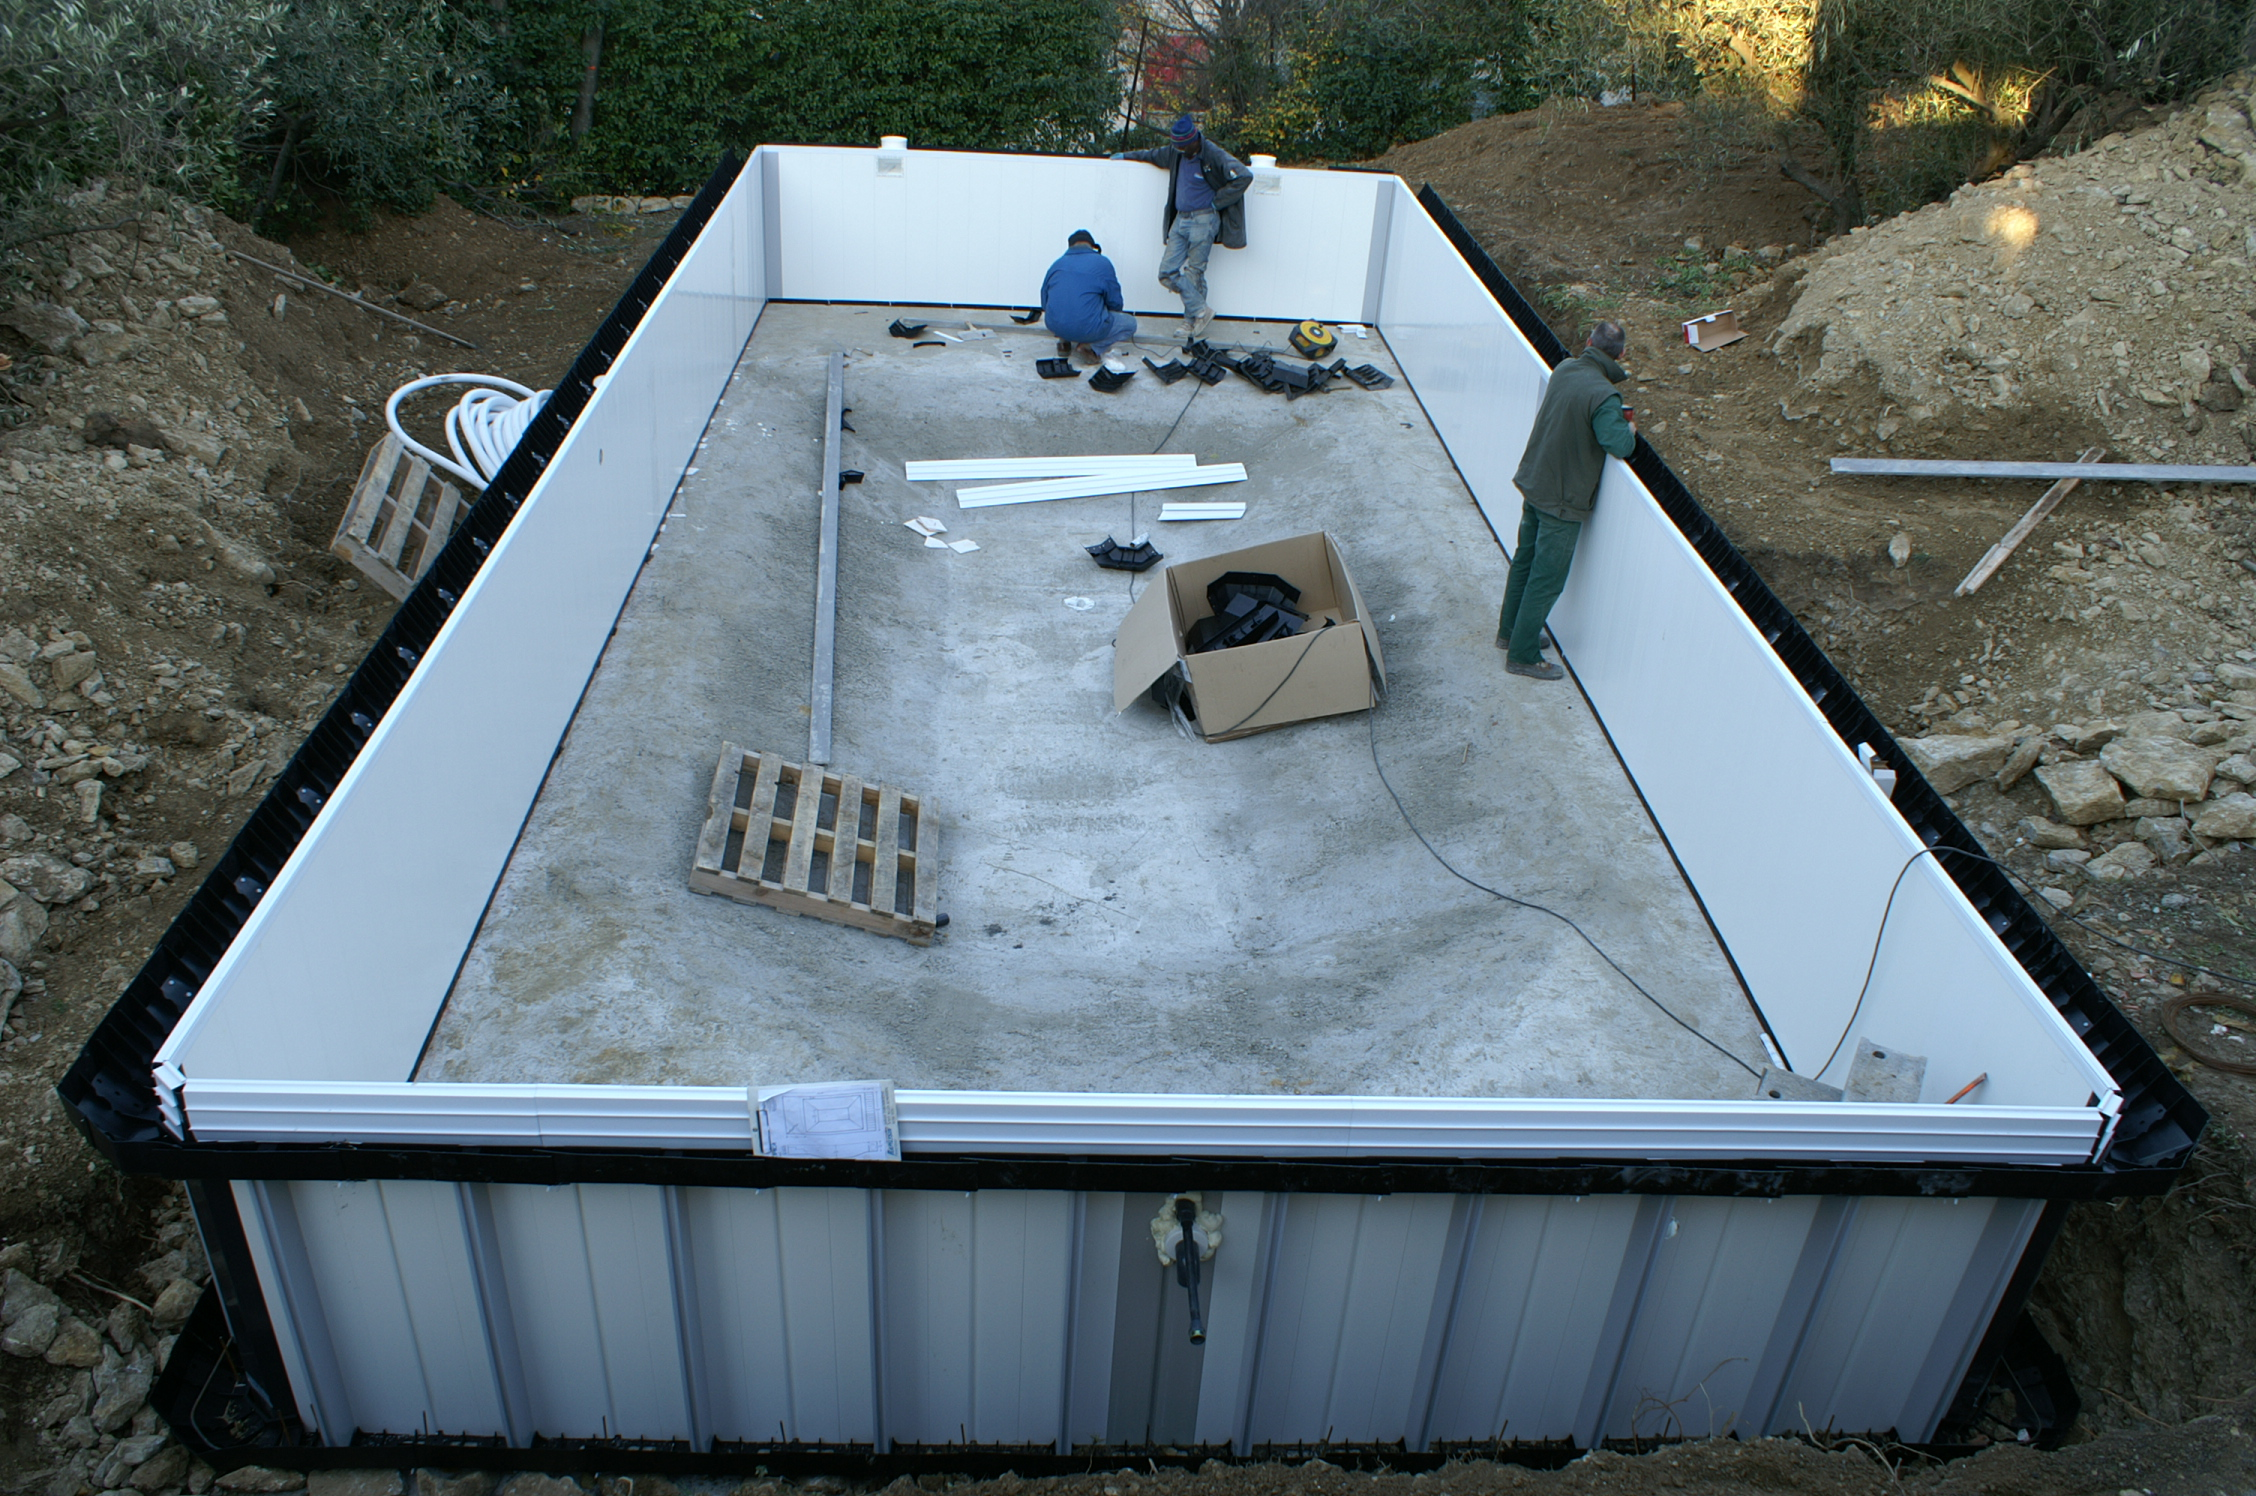 Construction piscines nimes gepad piscines et spa 30000 for Piscine hors sol coque rigide